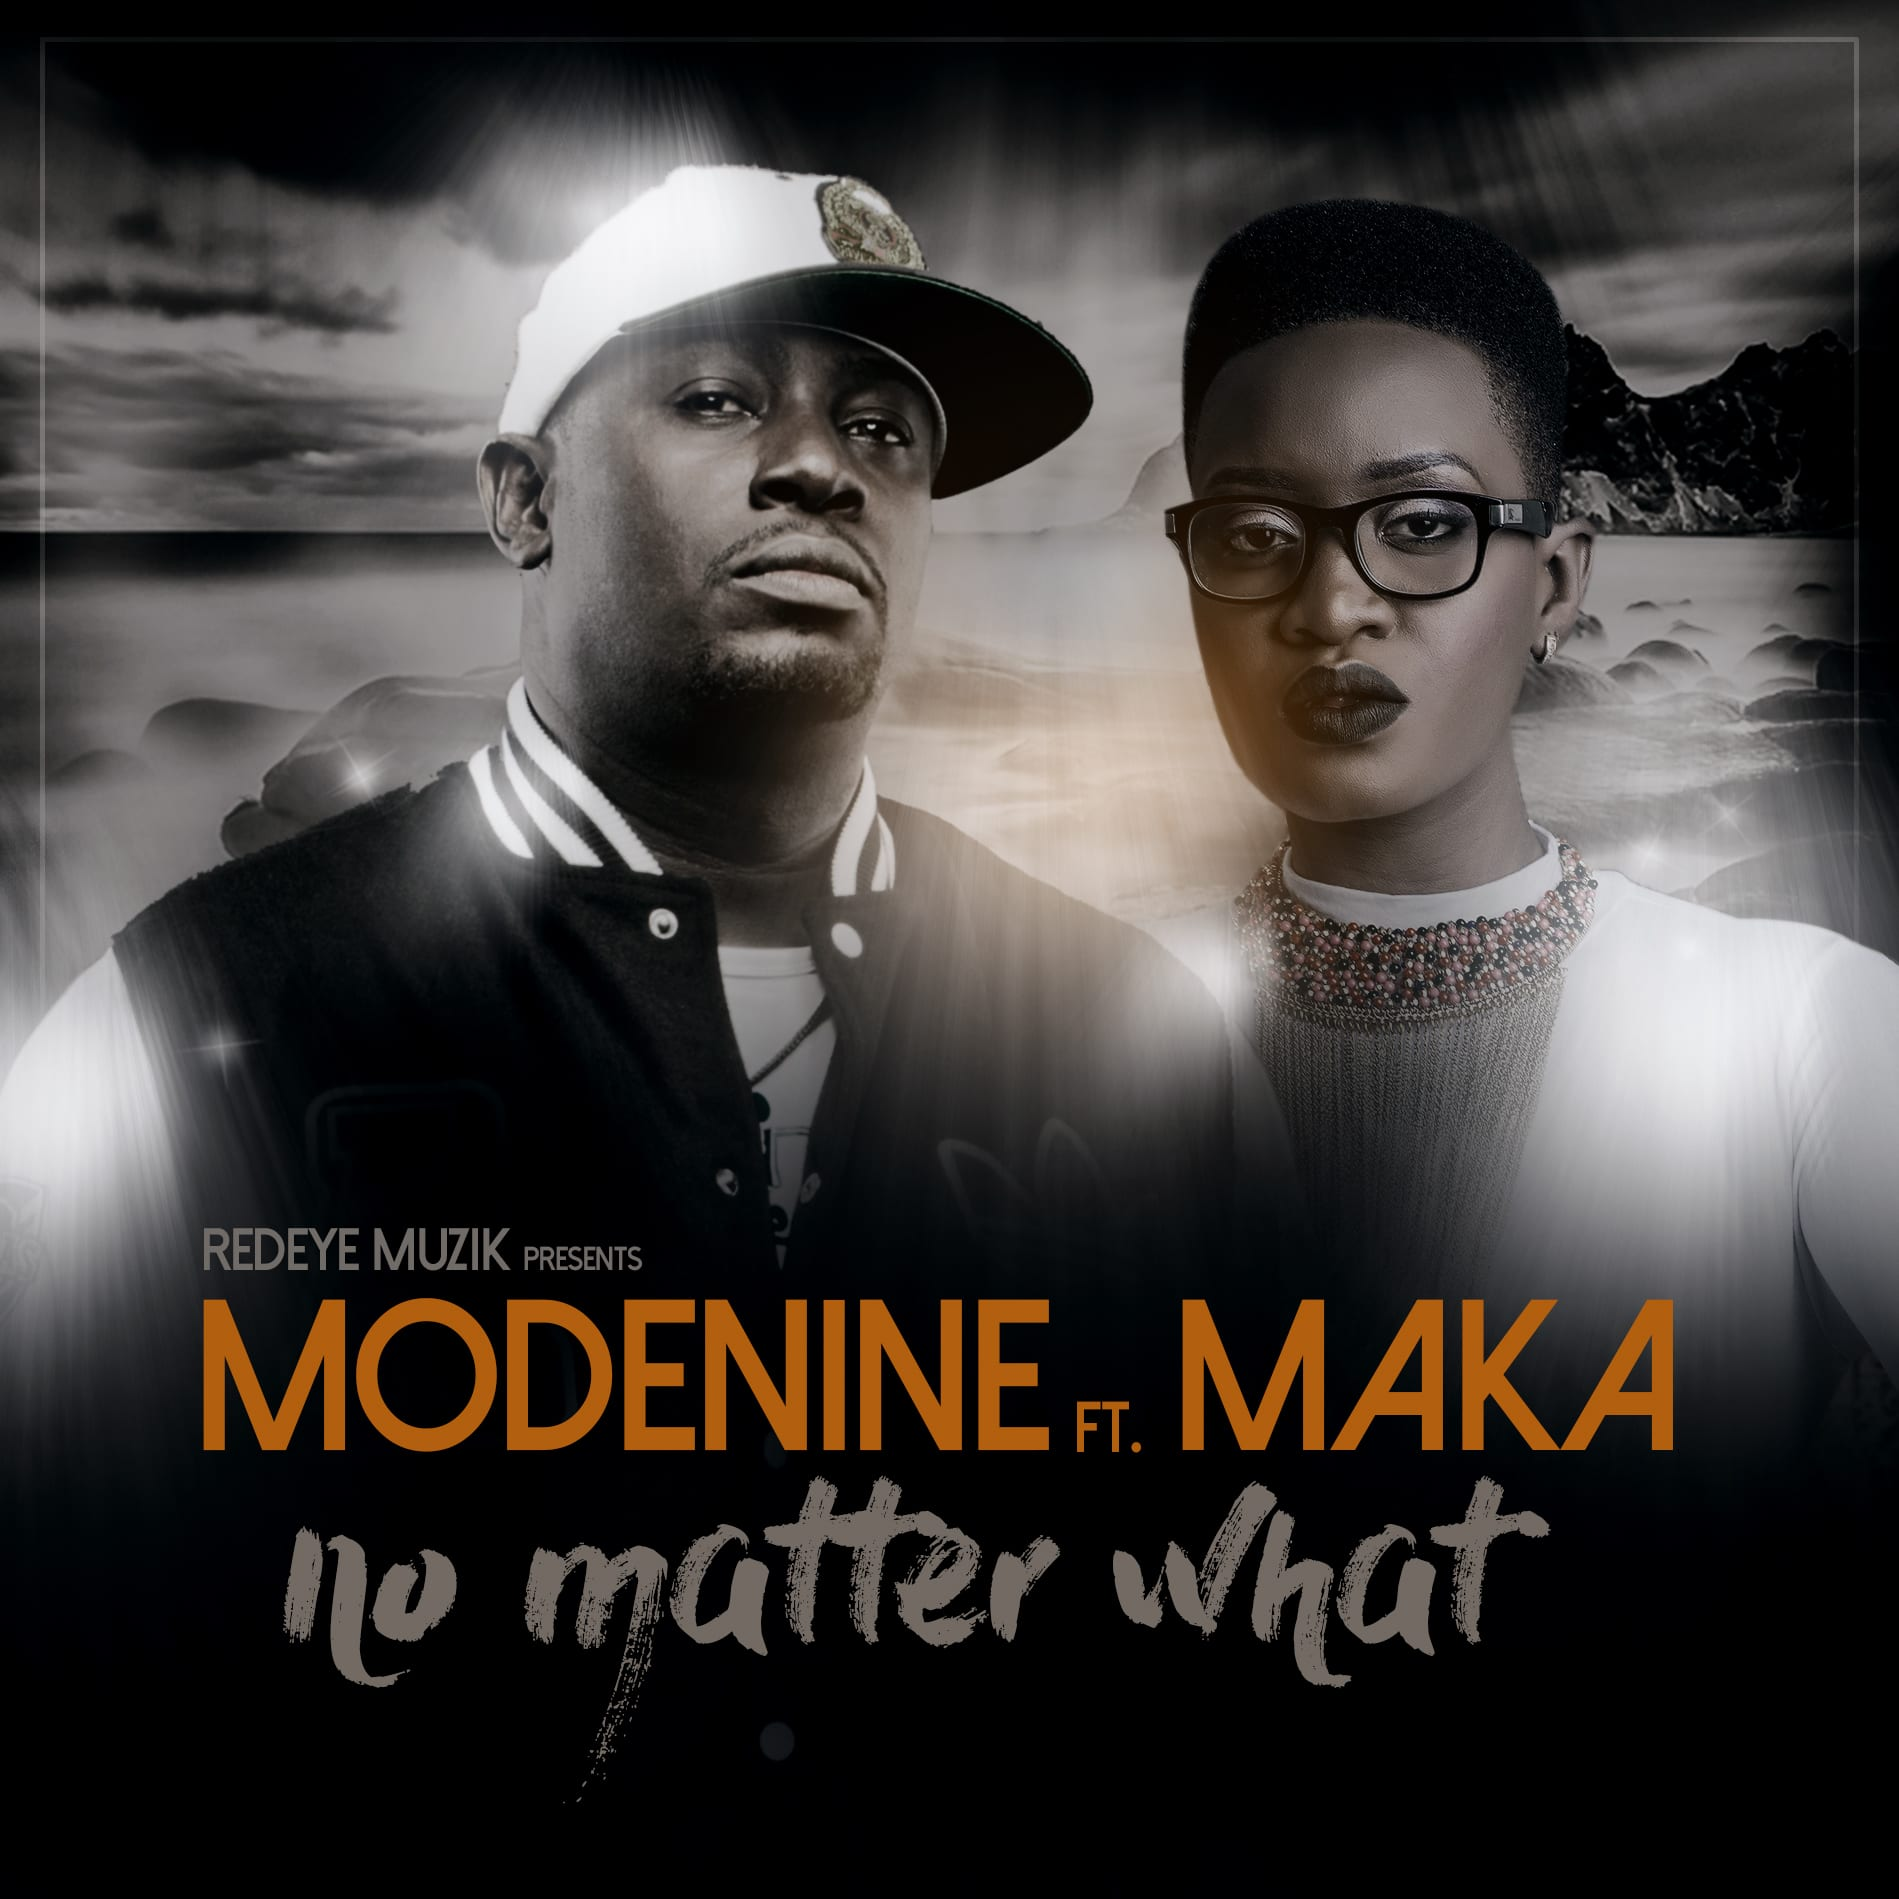 douglasjekan.com (Np): No Matter What – @modenine ft @theofficialmaka  (Song of the day)